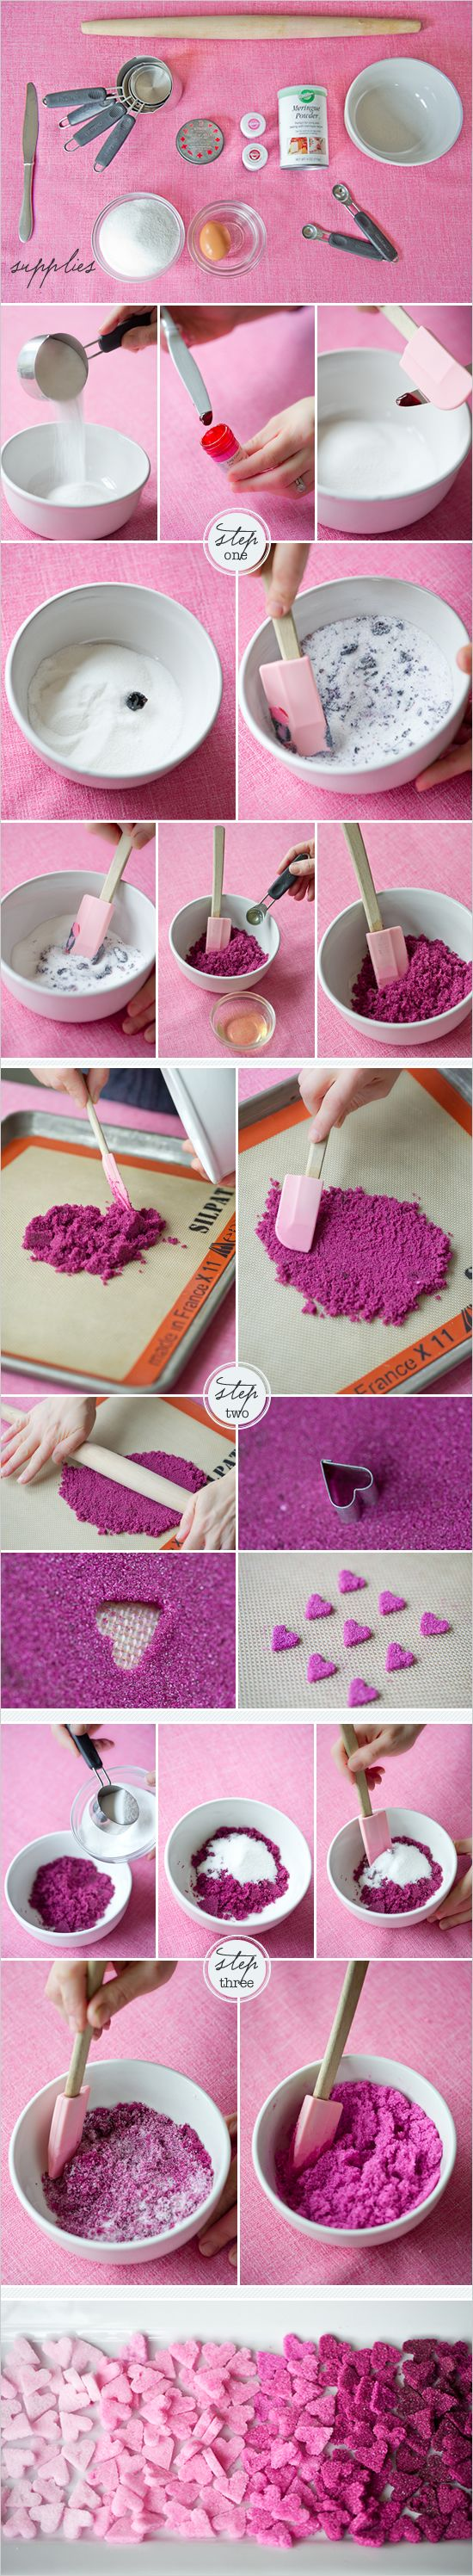 Easy to make sugar toppings for cupcakes and other tasty treats!